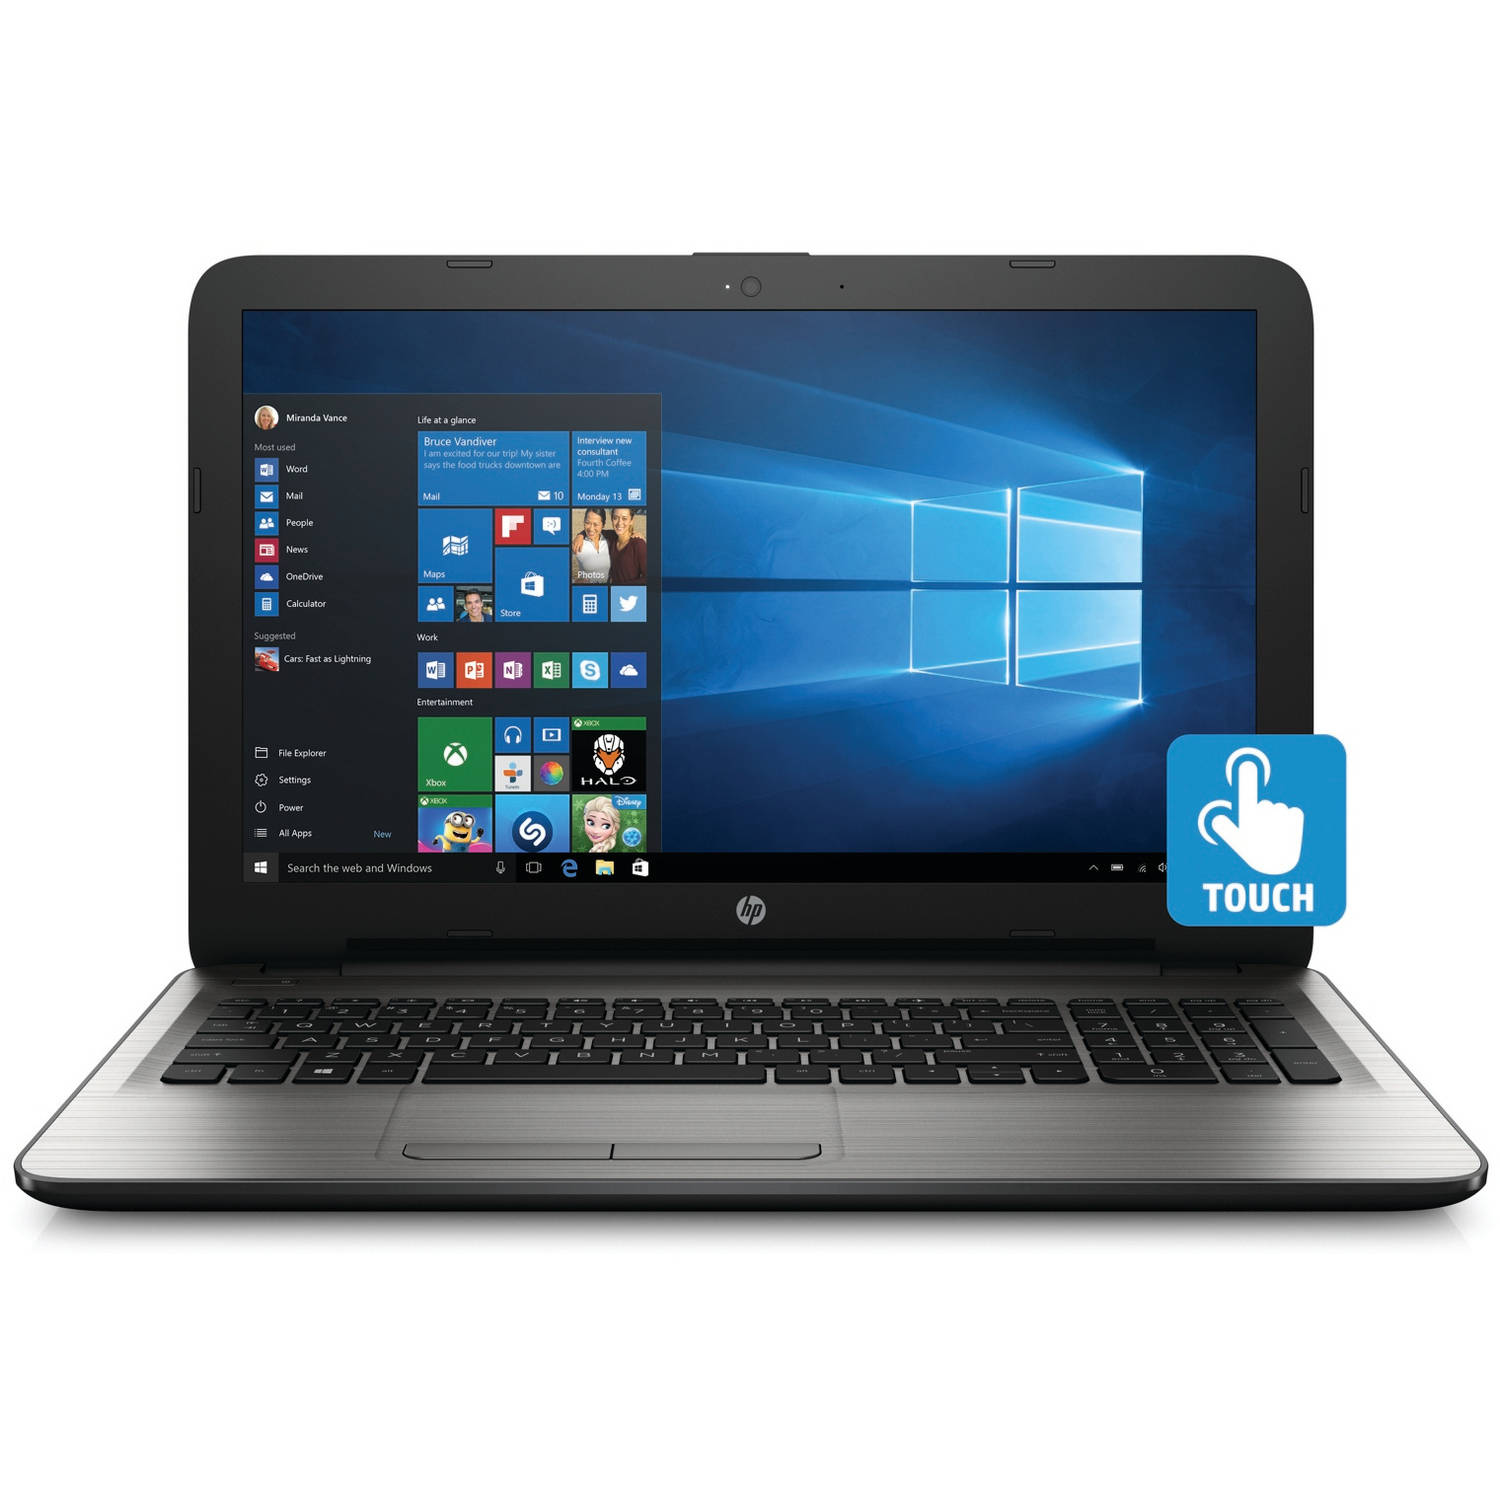 "HP 15-ay041wm 15.6"" Silver Fusion Laptop, Touch Screen, Windows 10, Intel Core i3-6100U Processor, 8GB Memory, 1TB Hard Drive"